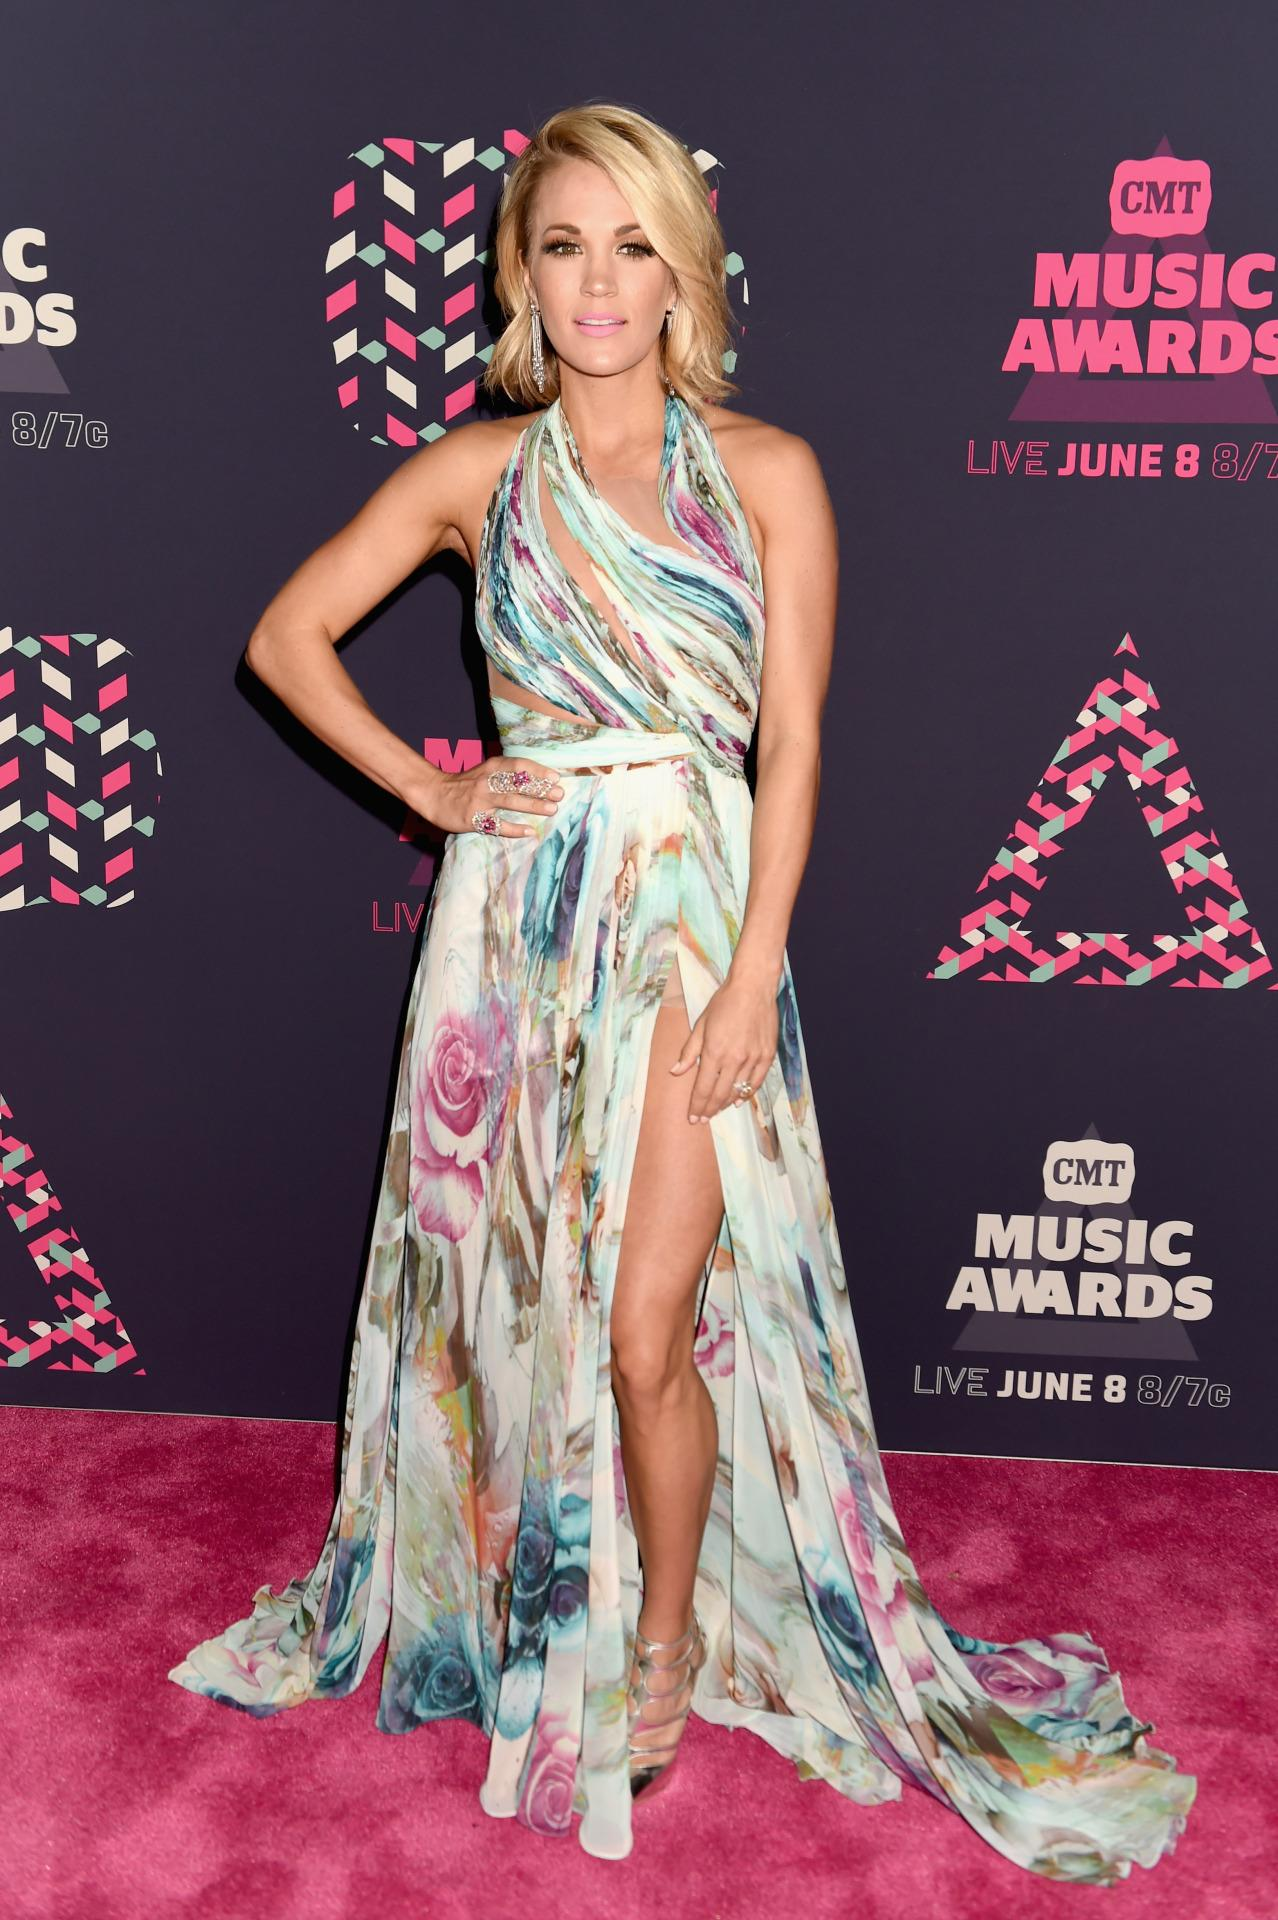 Cmt Music Awards 2016: Carrie Underwood, Keith Urban, Fifth Harmony, And  More